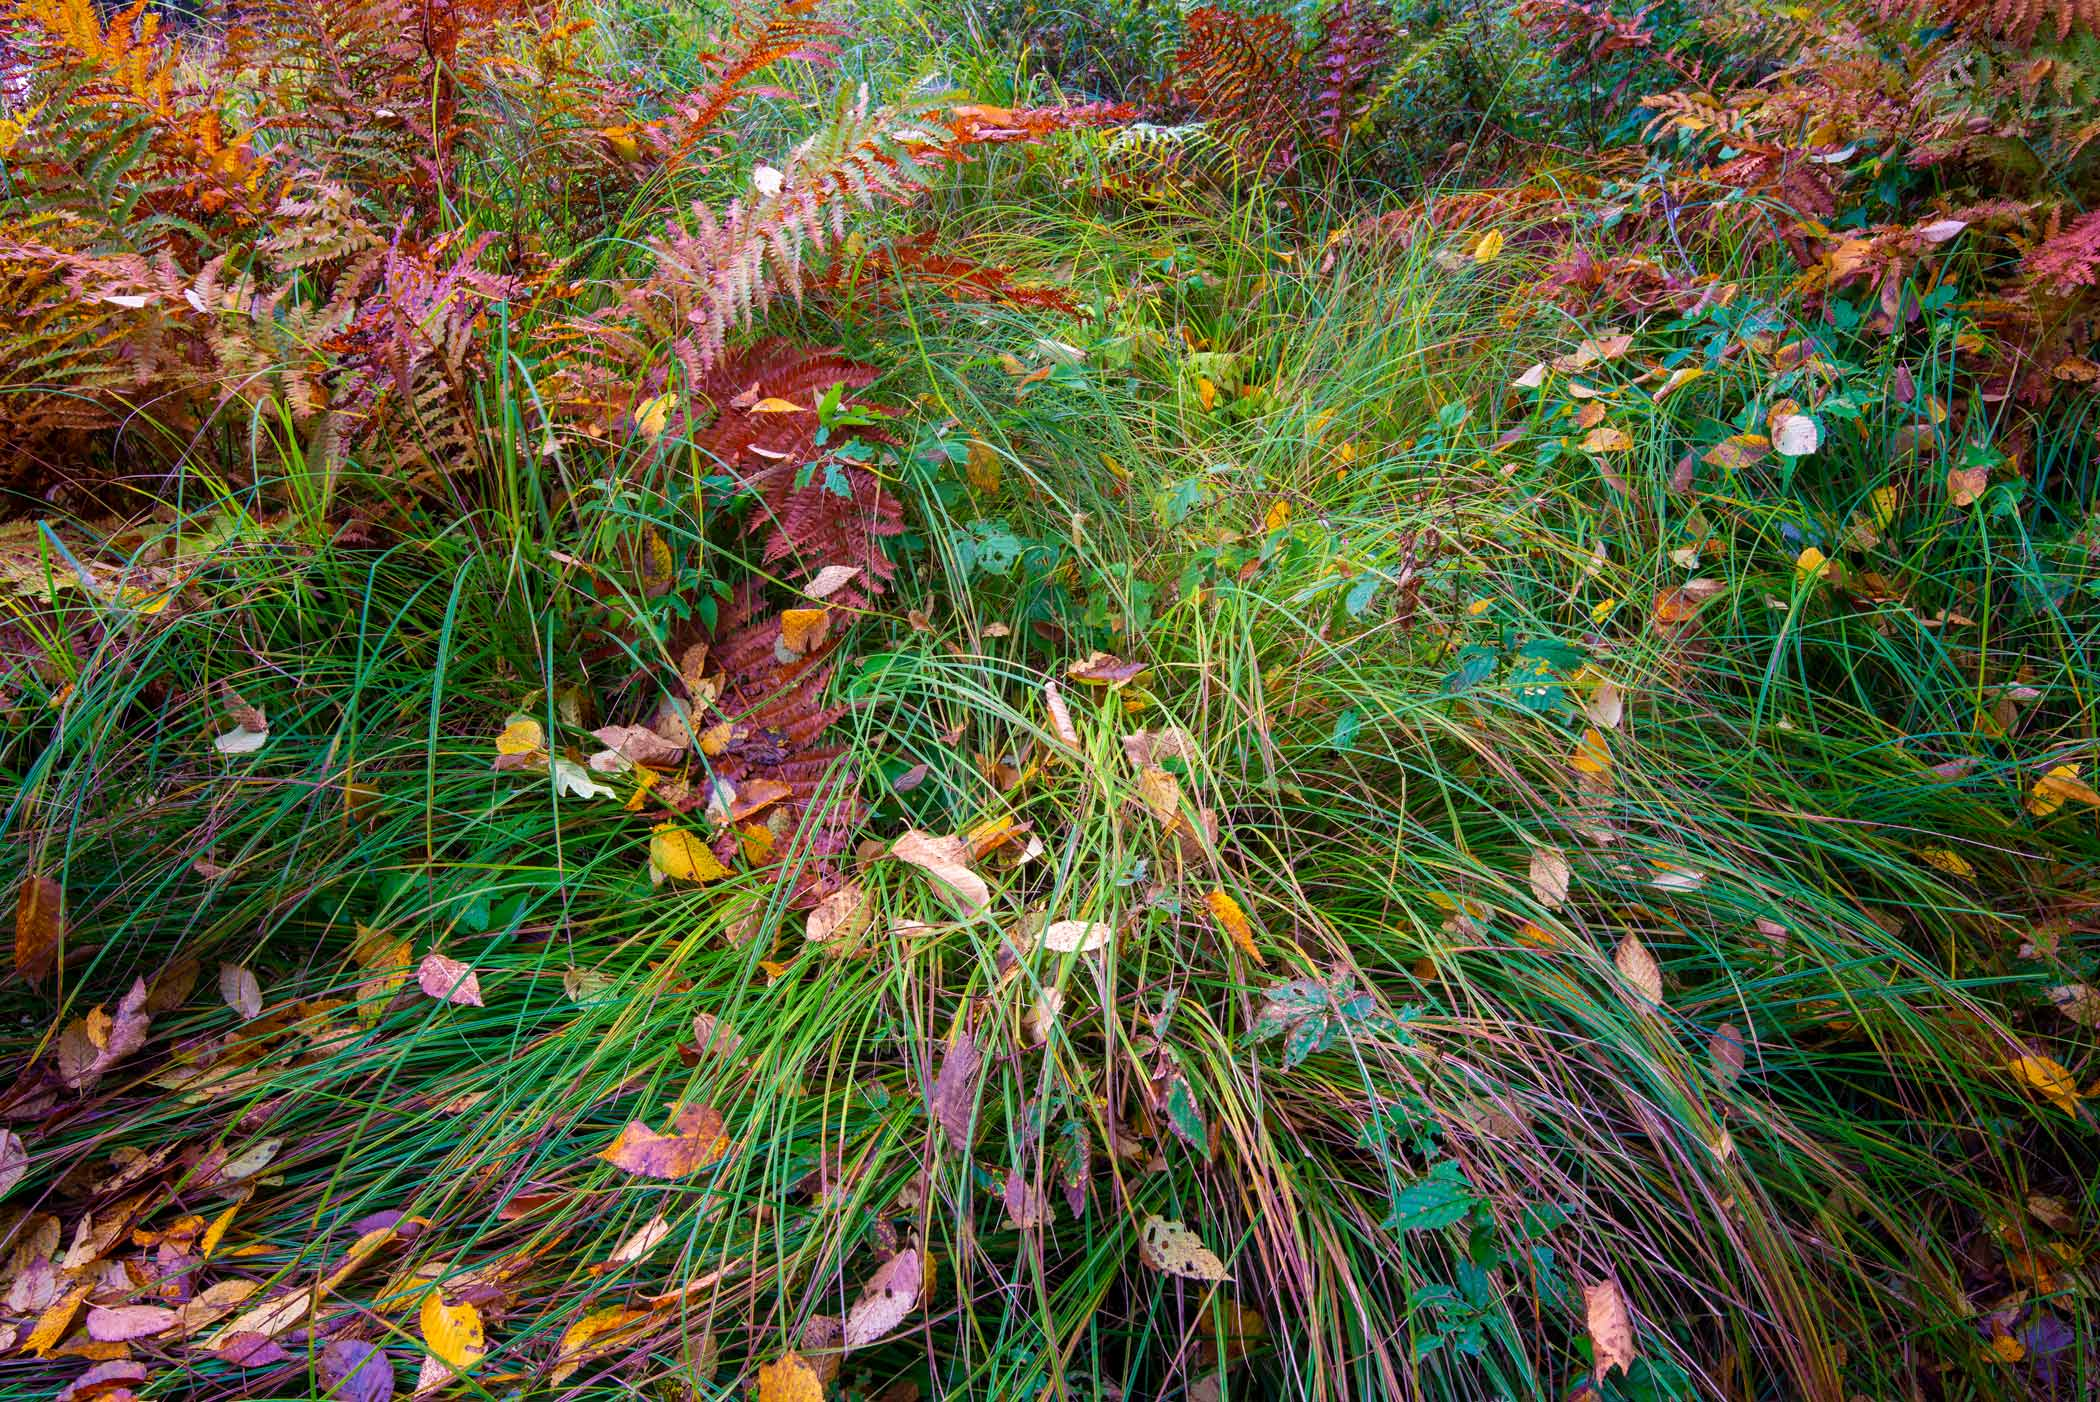 Grasses, Ferns, & Leaves